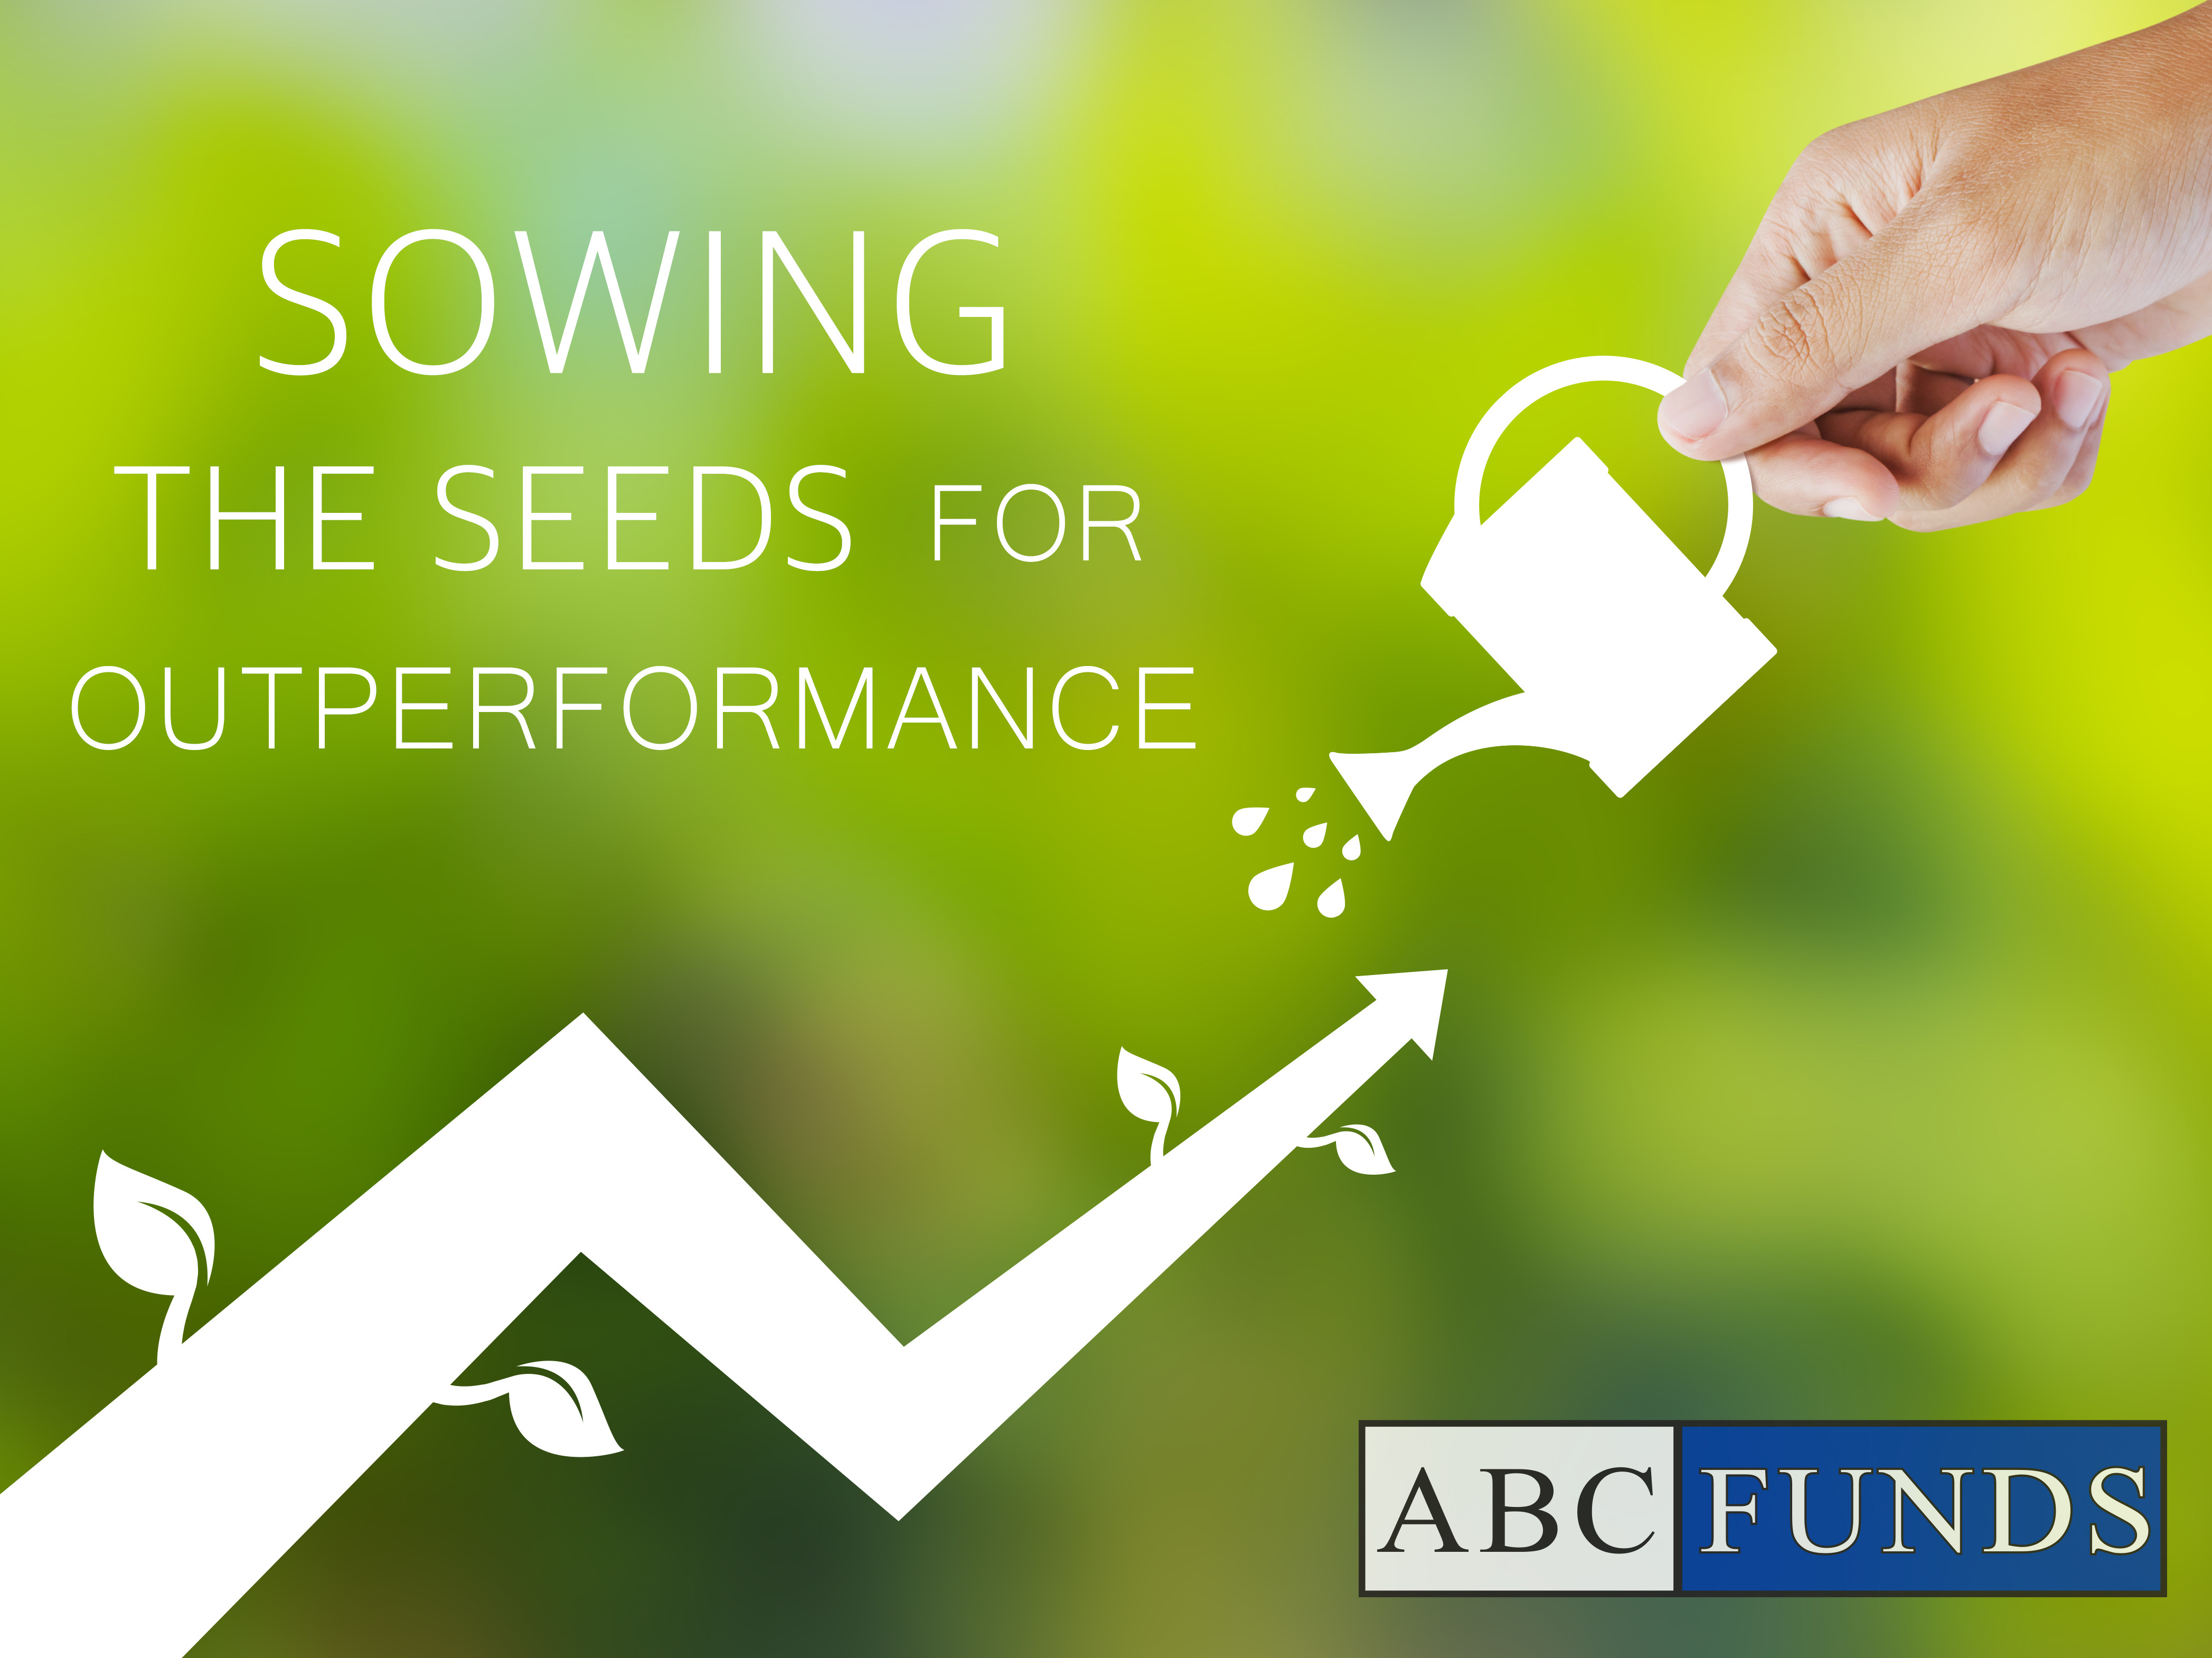 Sowing The Seeds for Outperformance